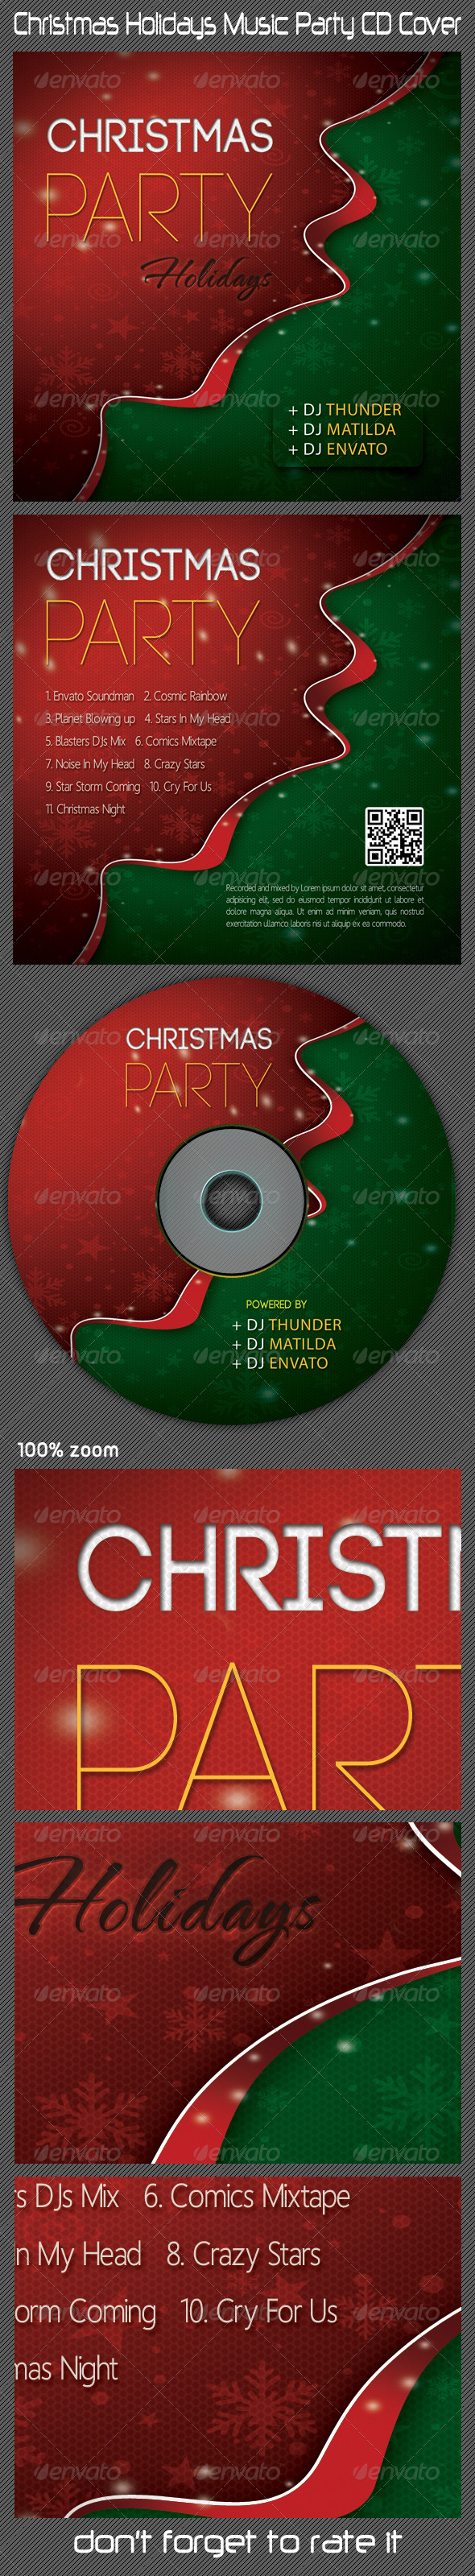 GraphicRiver Christmas Holidays Music Party CD Cover 6377631